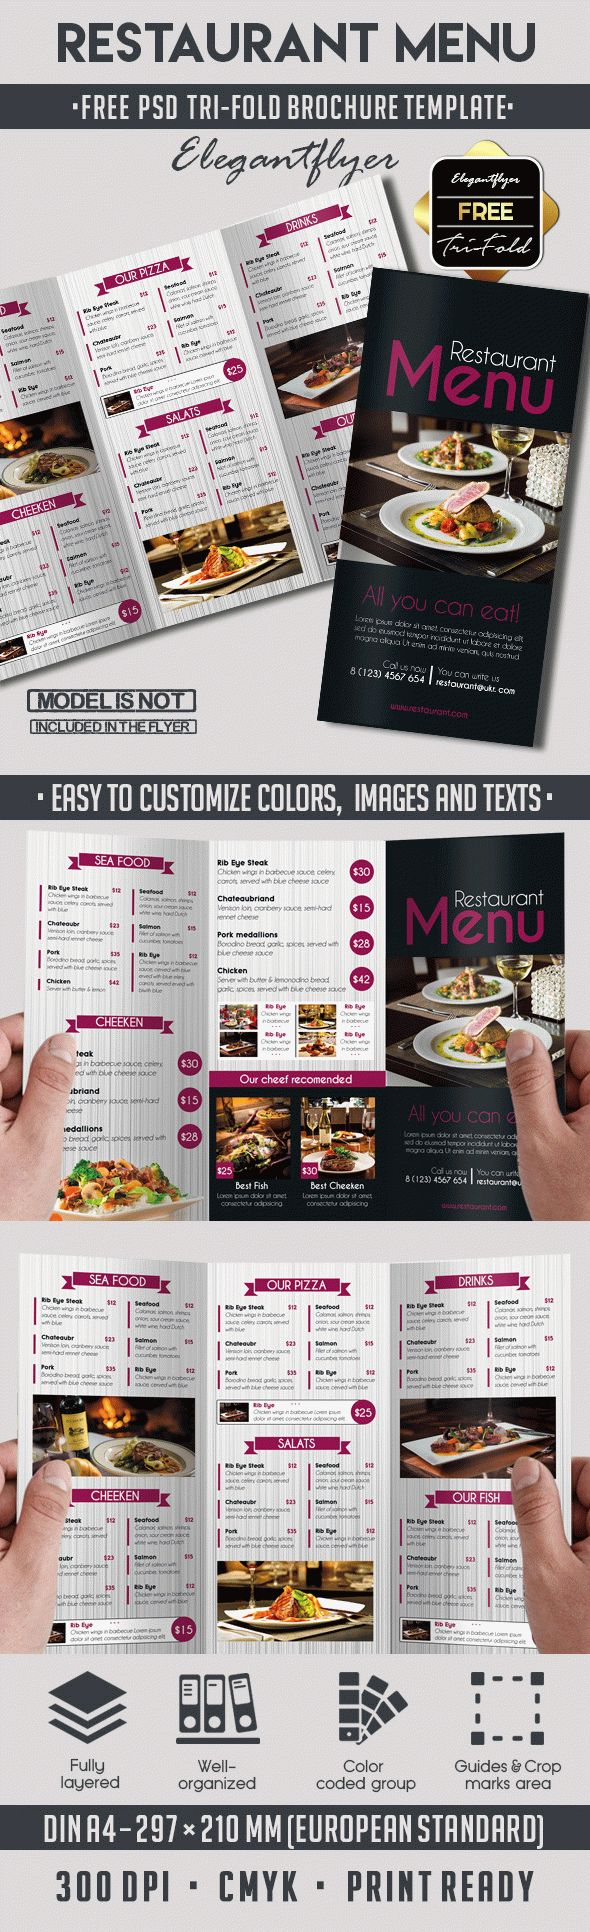 tri fold brochure template psd free - template brochure for restaurant by elegantflyer